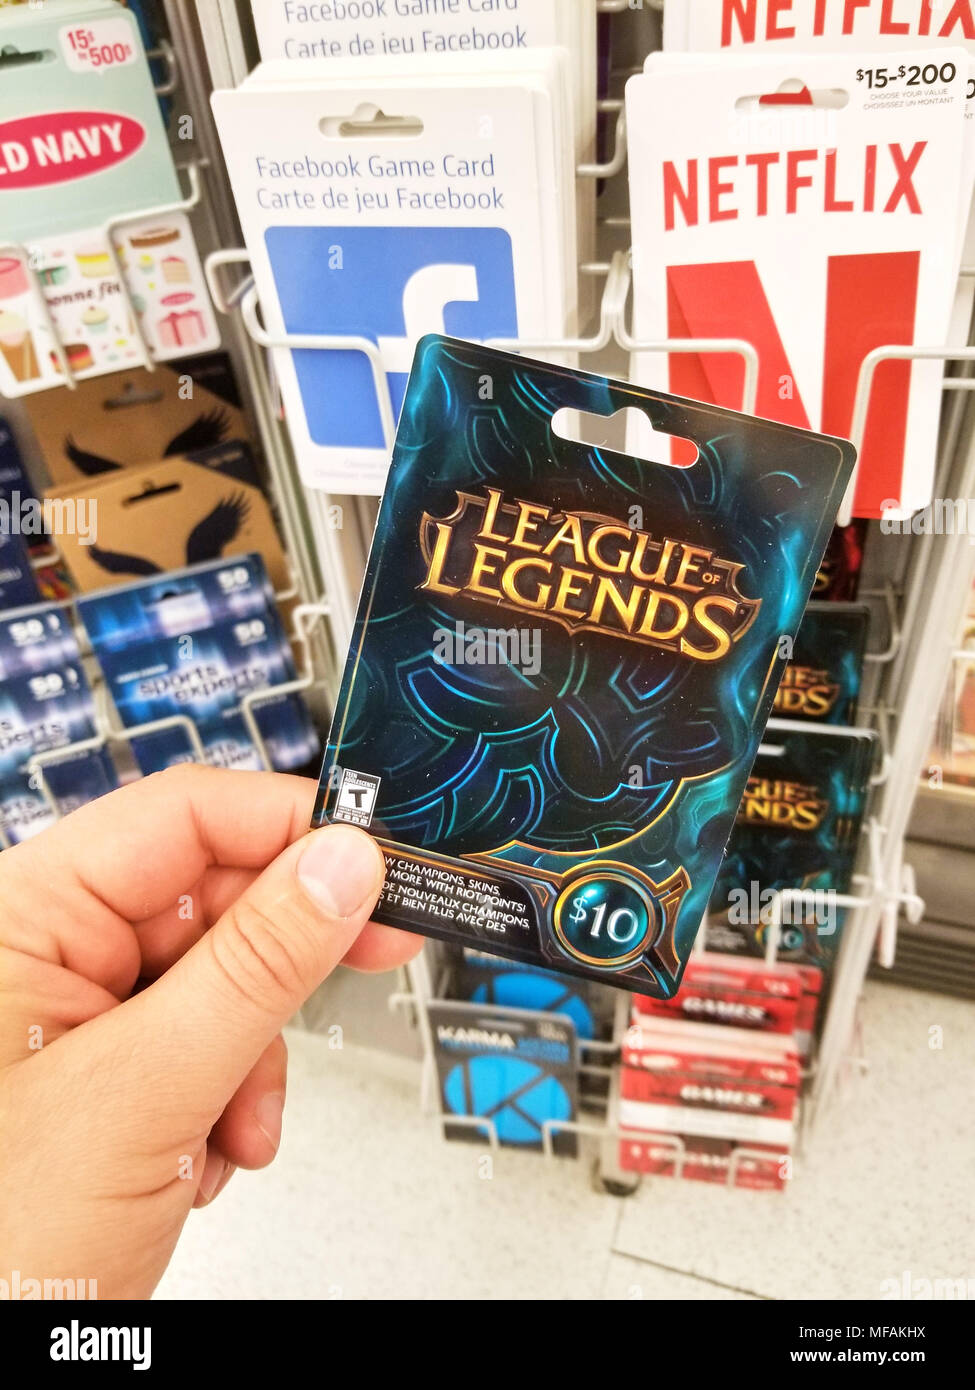 MONTREAL, CANADA - MARCH 31, 2018 : A hand holding a League of Legends gift card. League of Legends is a competitive online game that blends the speed - Stock Image